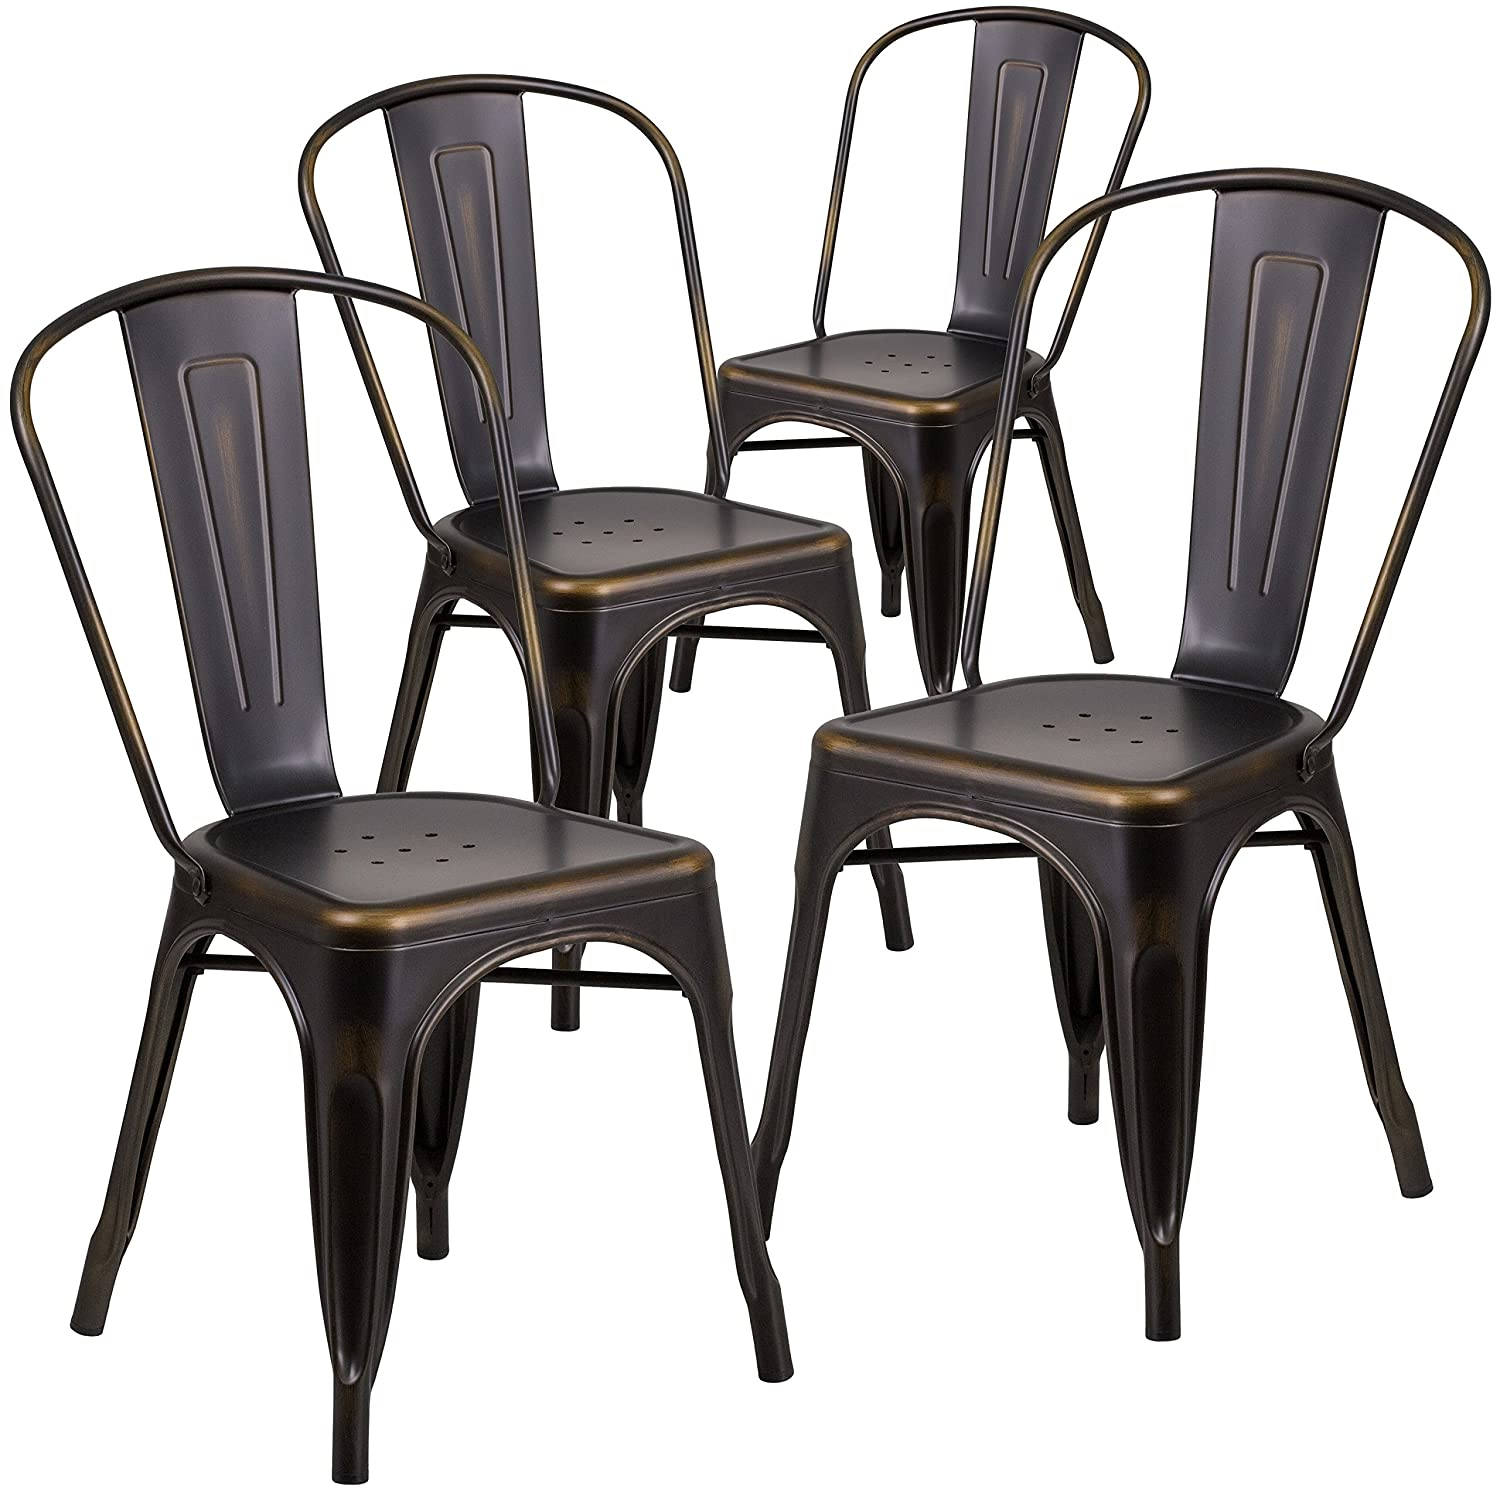 Amazon com flash furniture 4 pk distressed copper metal indoor outdoor stackable chair kitchen dining